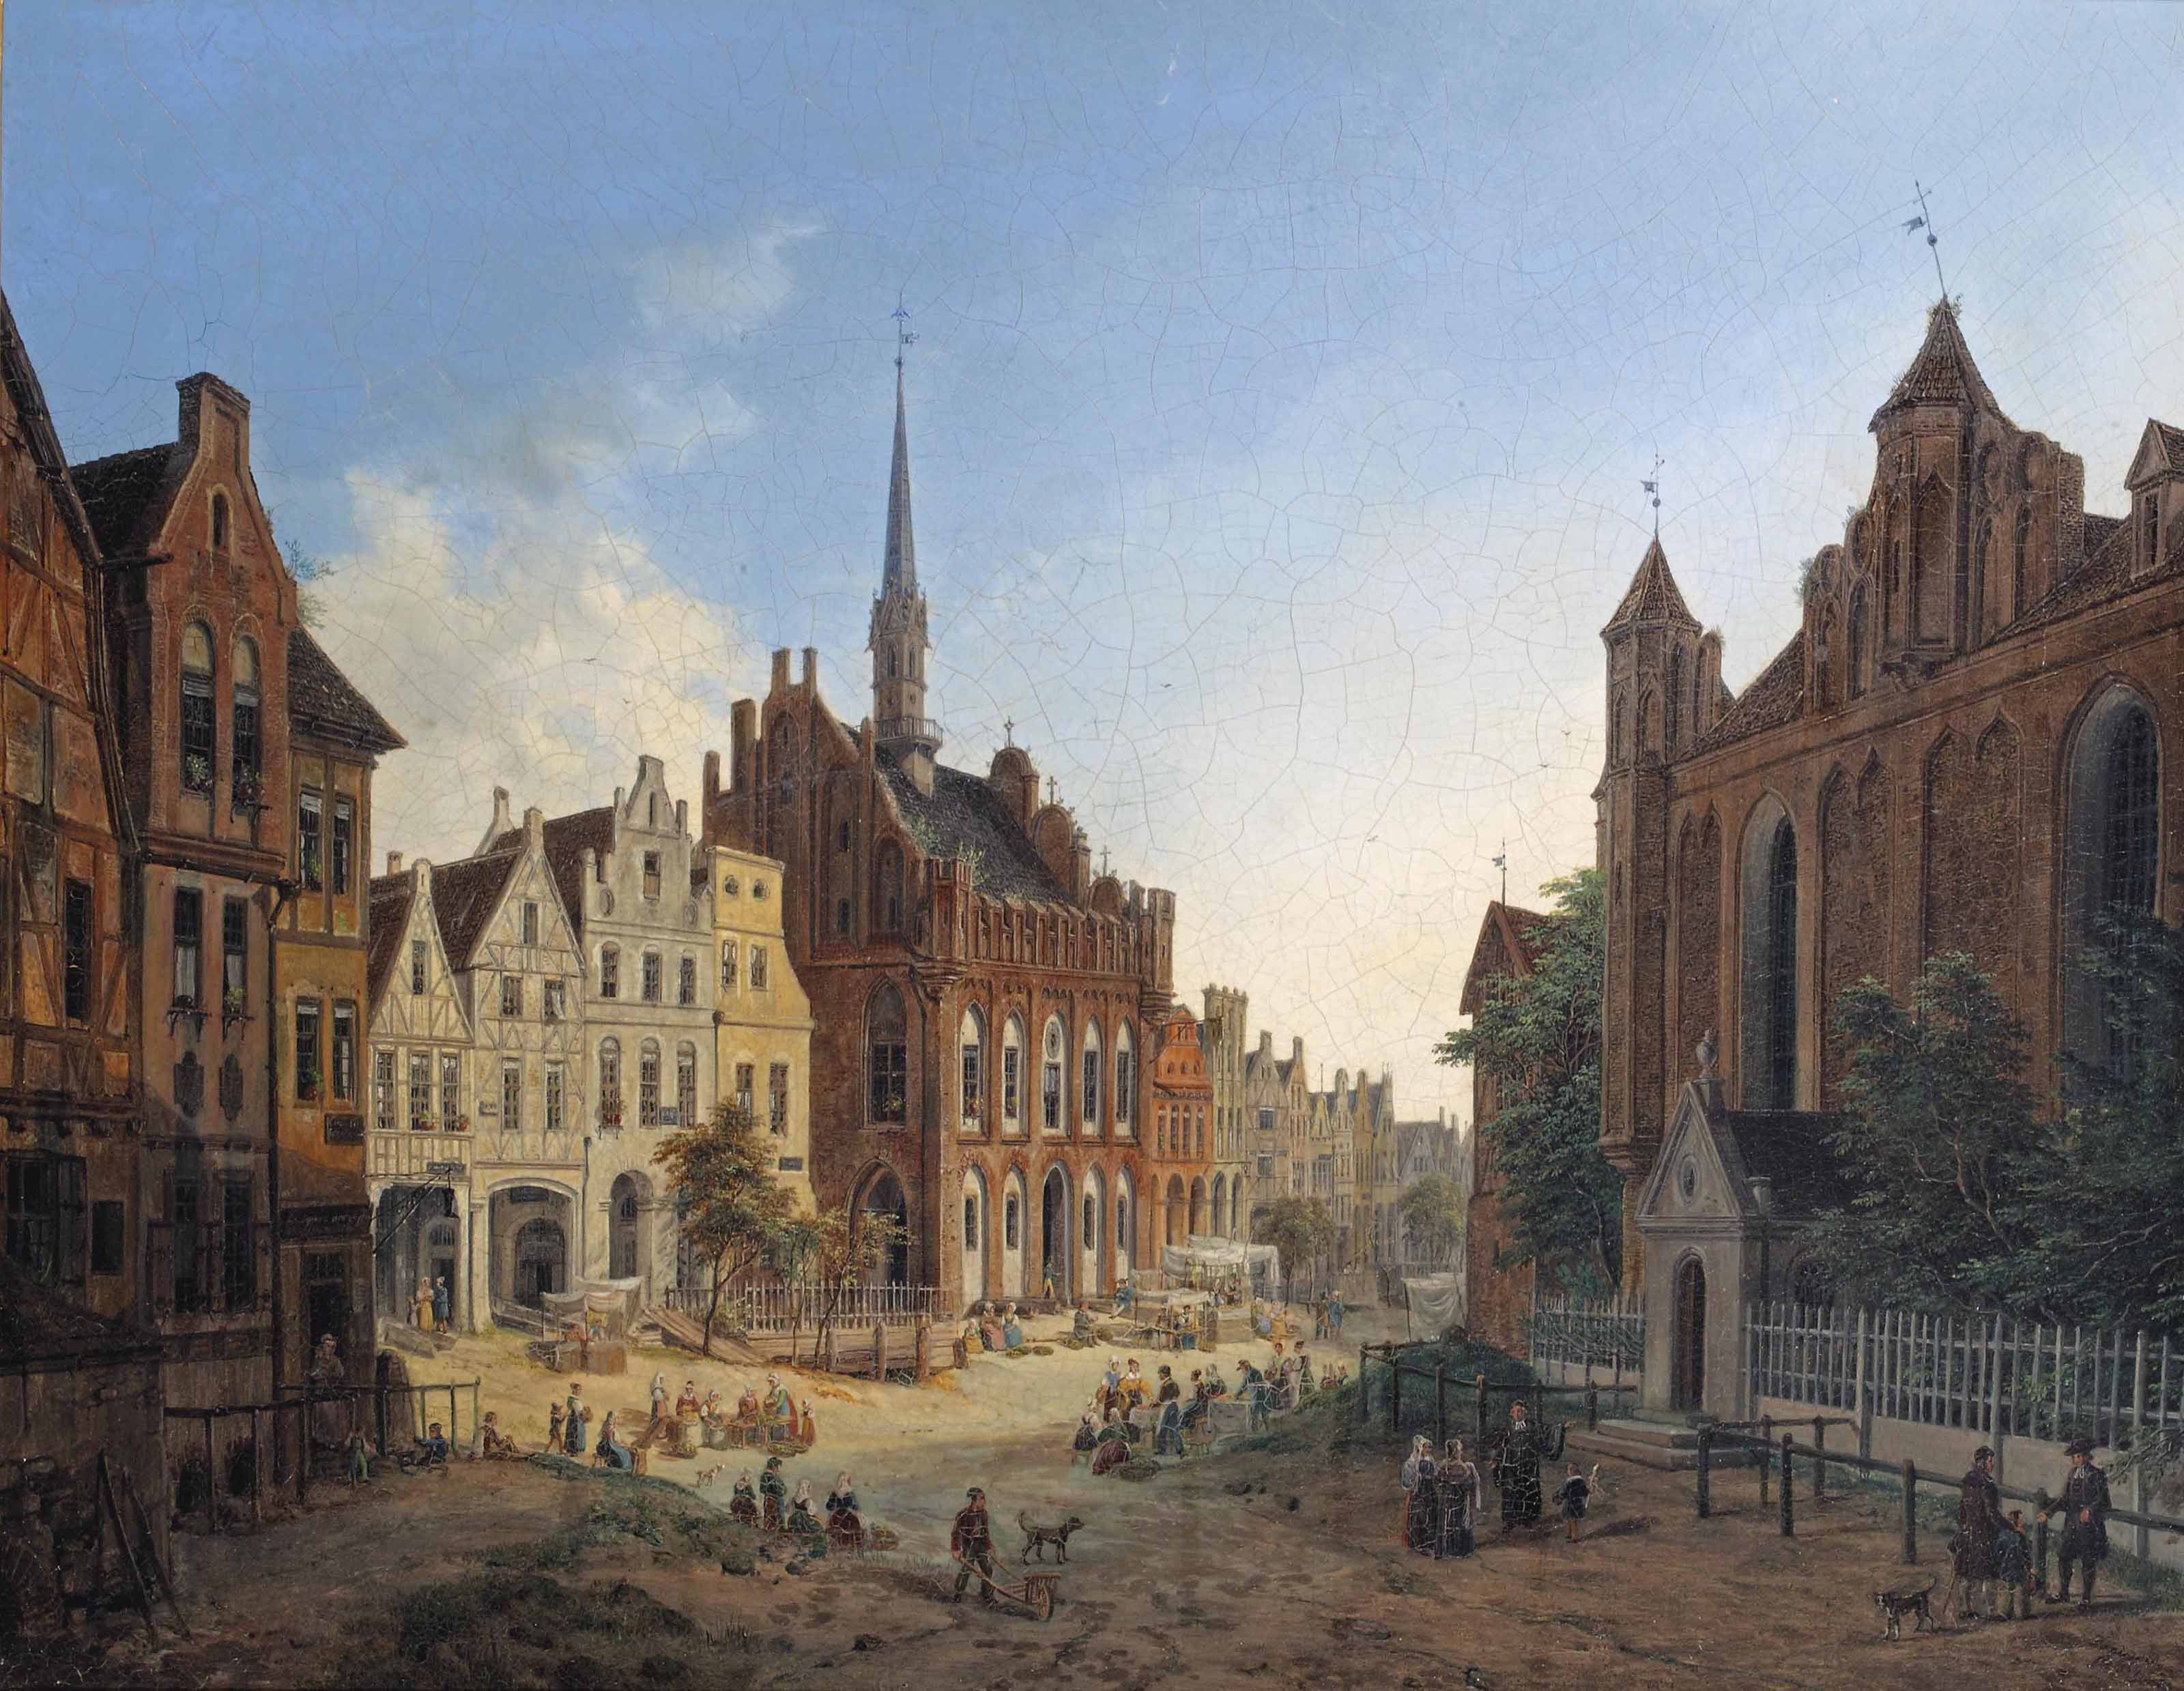 Daily activities on a square with the old Town Hall, Marienburg